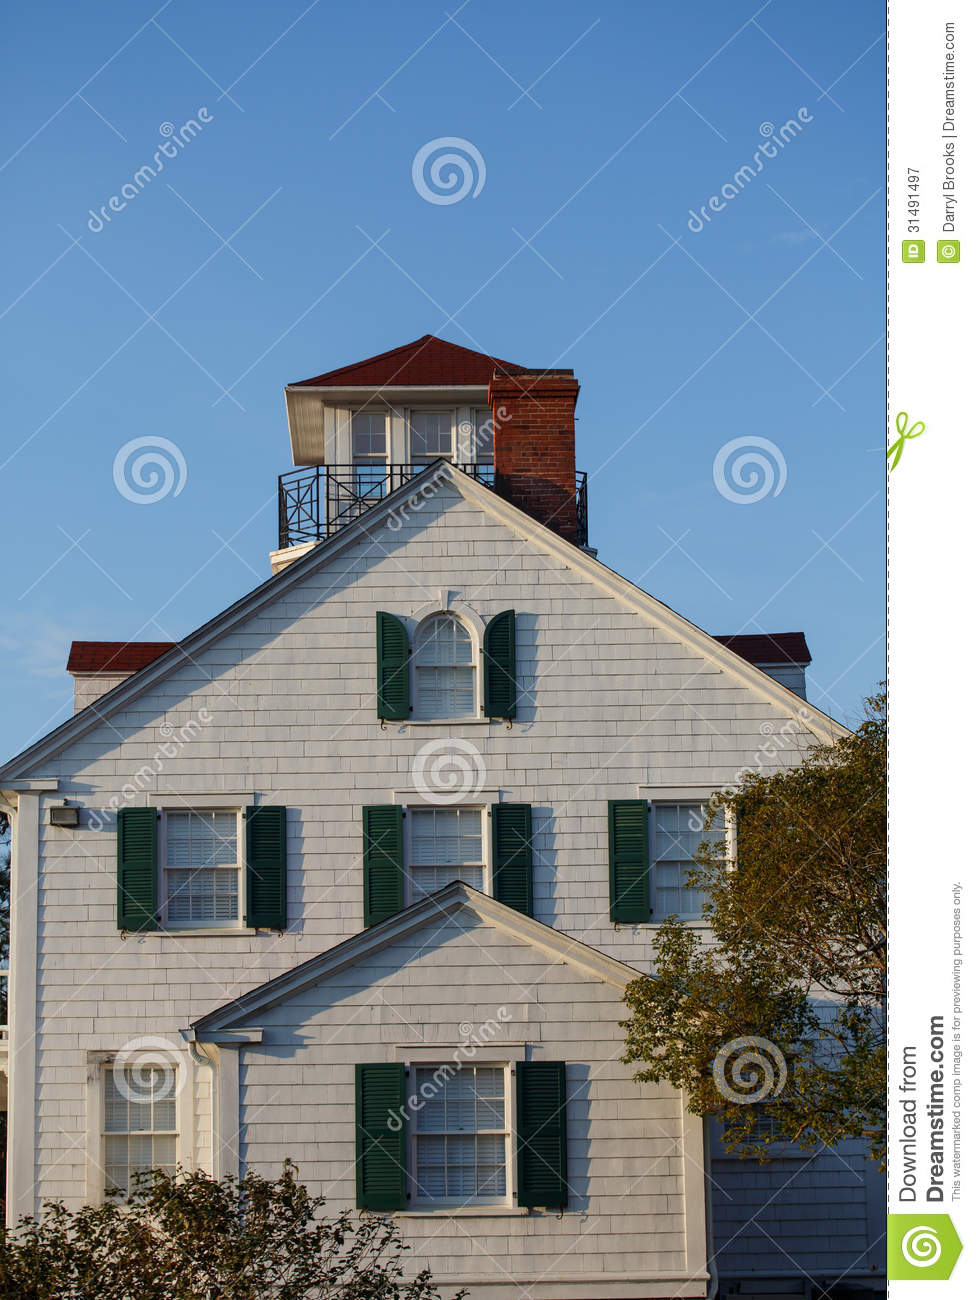 wood siding coastal home with green shutters stock image